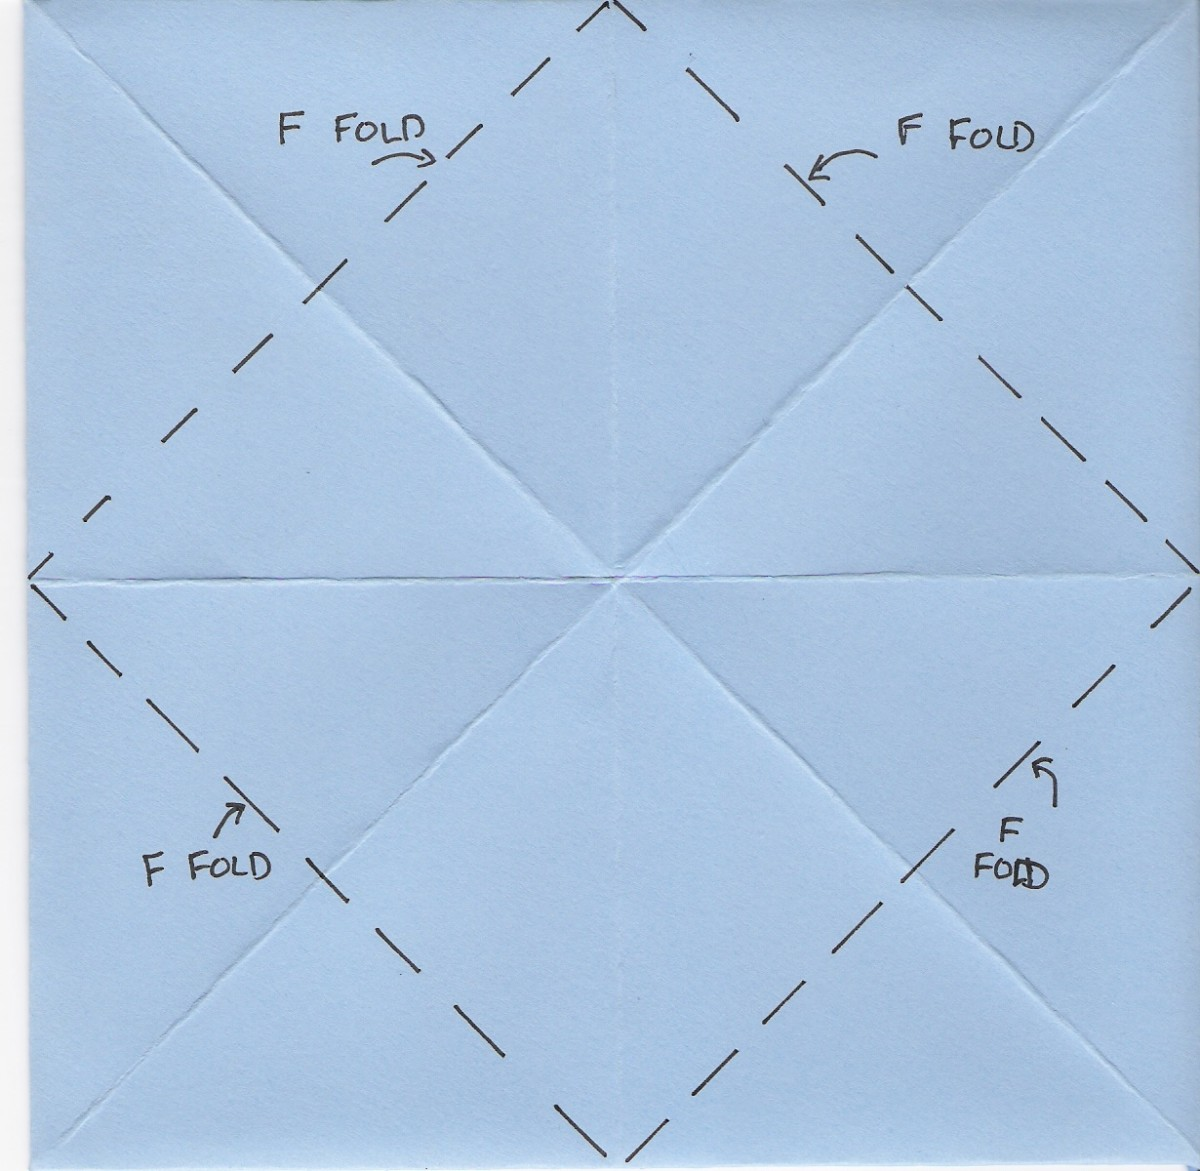 Flip paper over to back, fold in corners to center